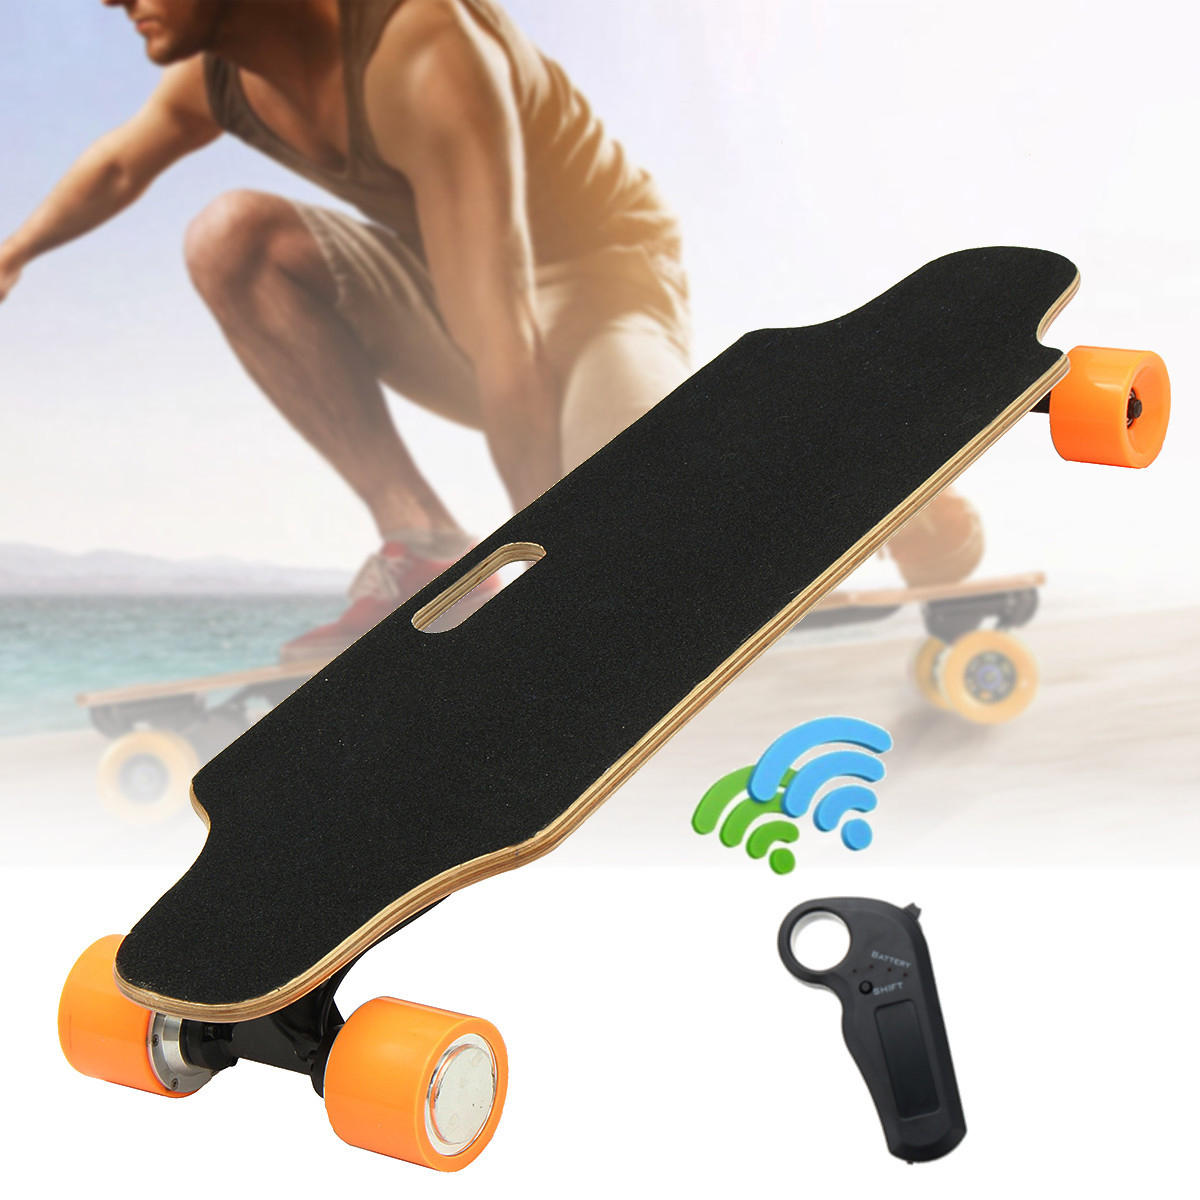 Remote Control Skateboard >> Alfas 250w 15km H Electric Skateboard Scooter Remote Control Longboard 7 Layer Maple Board Shock Proof Board